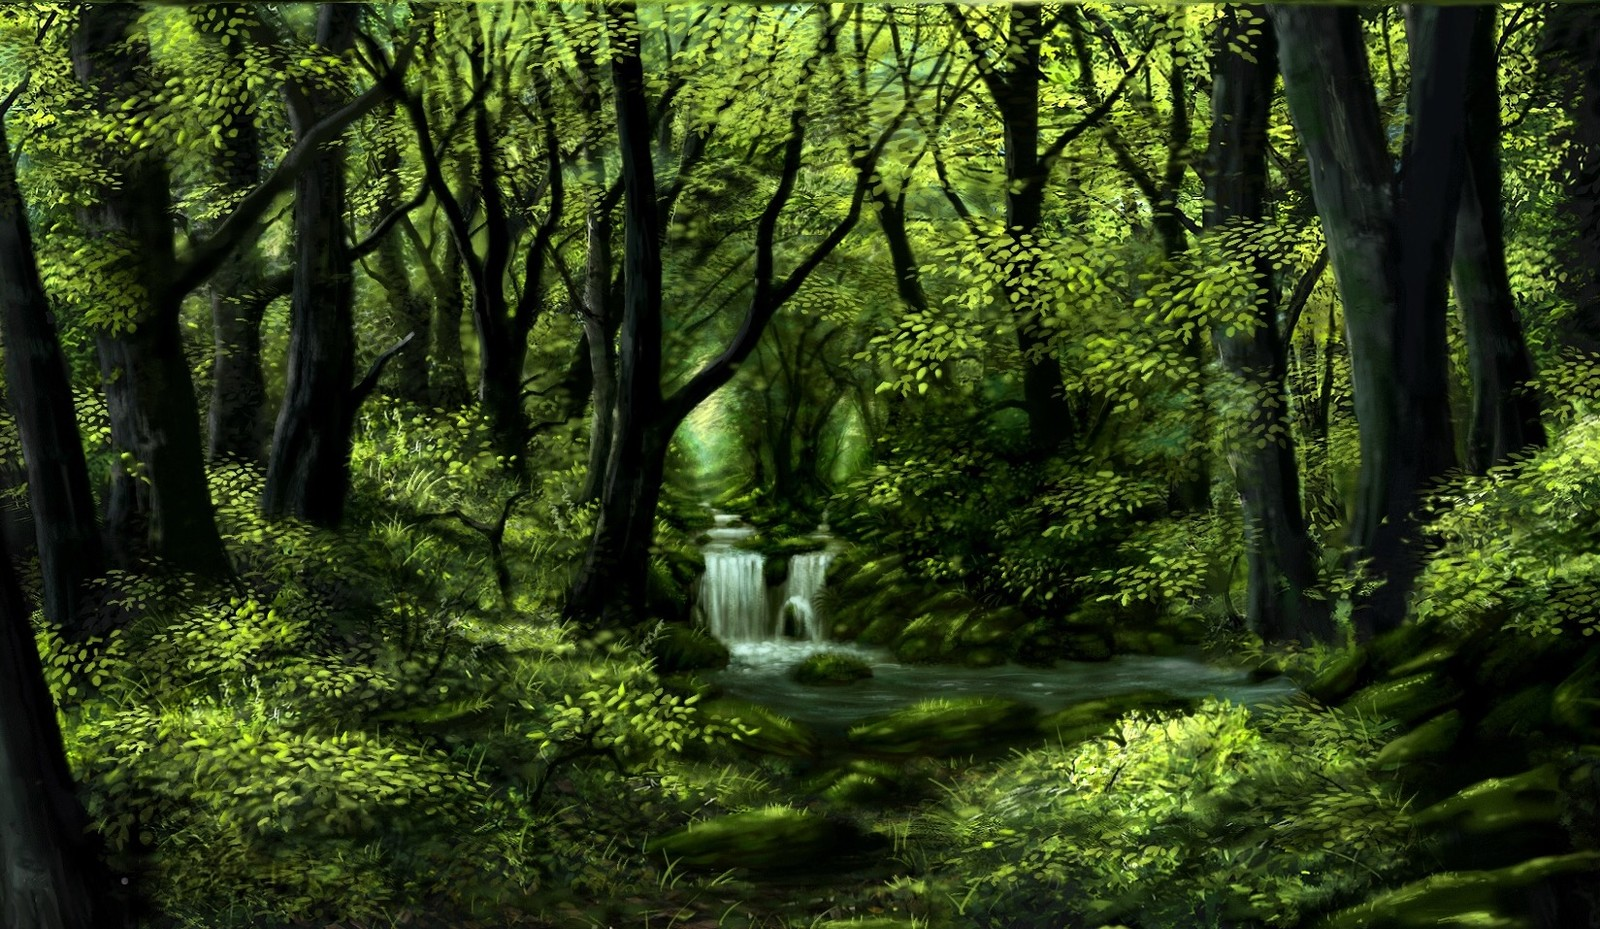 Green forest study (3)